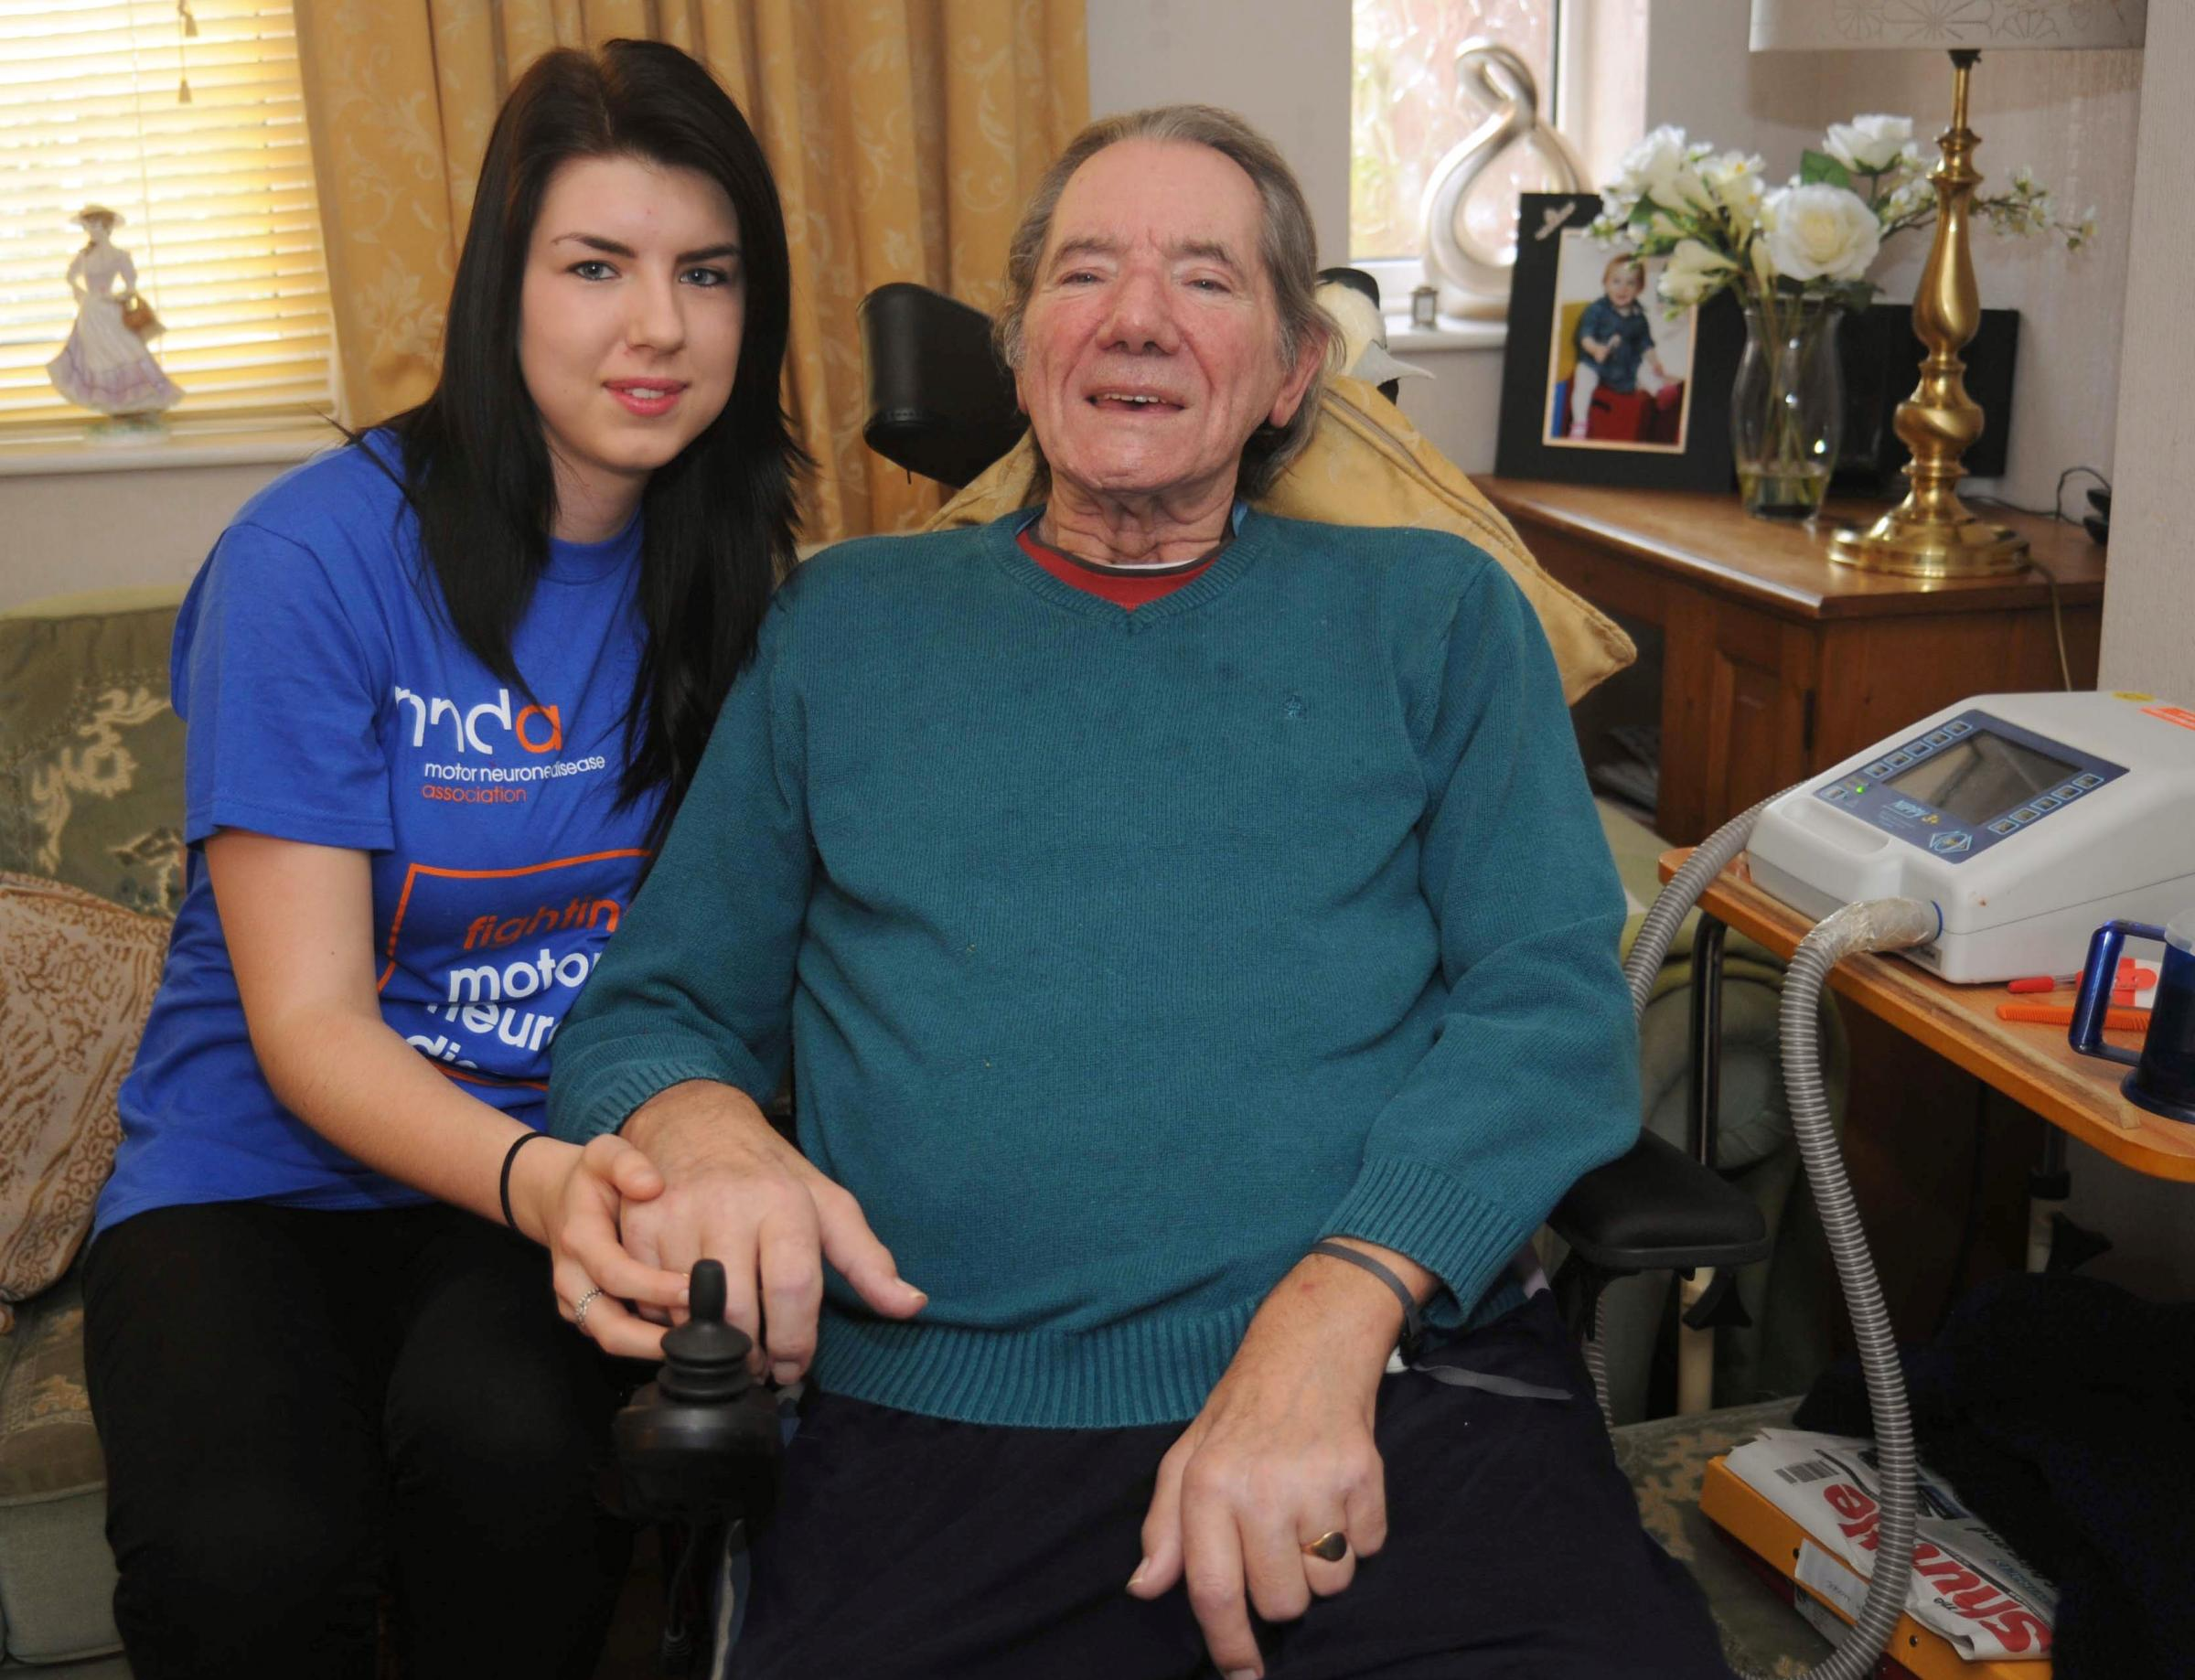 TAKING PLUNGE: Molly Chance, who will be doing a sponsored skydive, pictured with her grandfather Keith Moore.